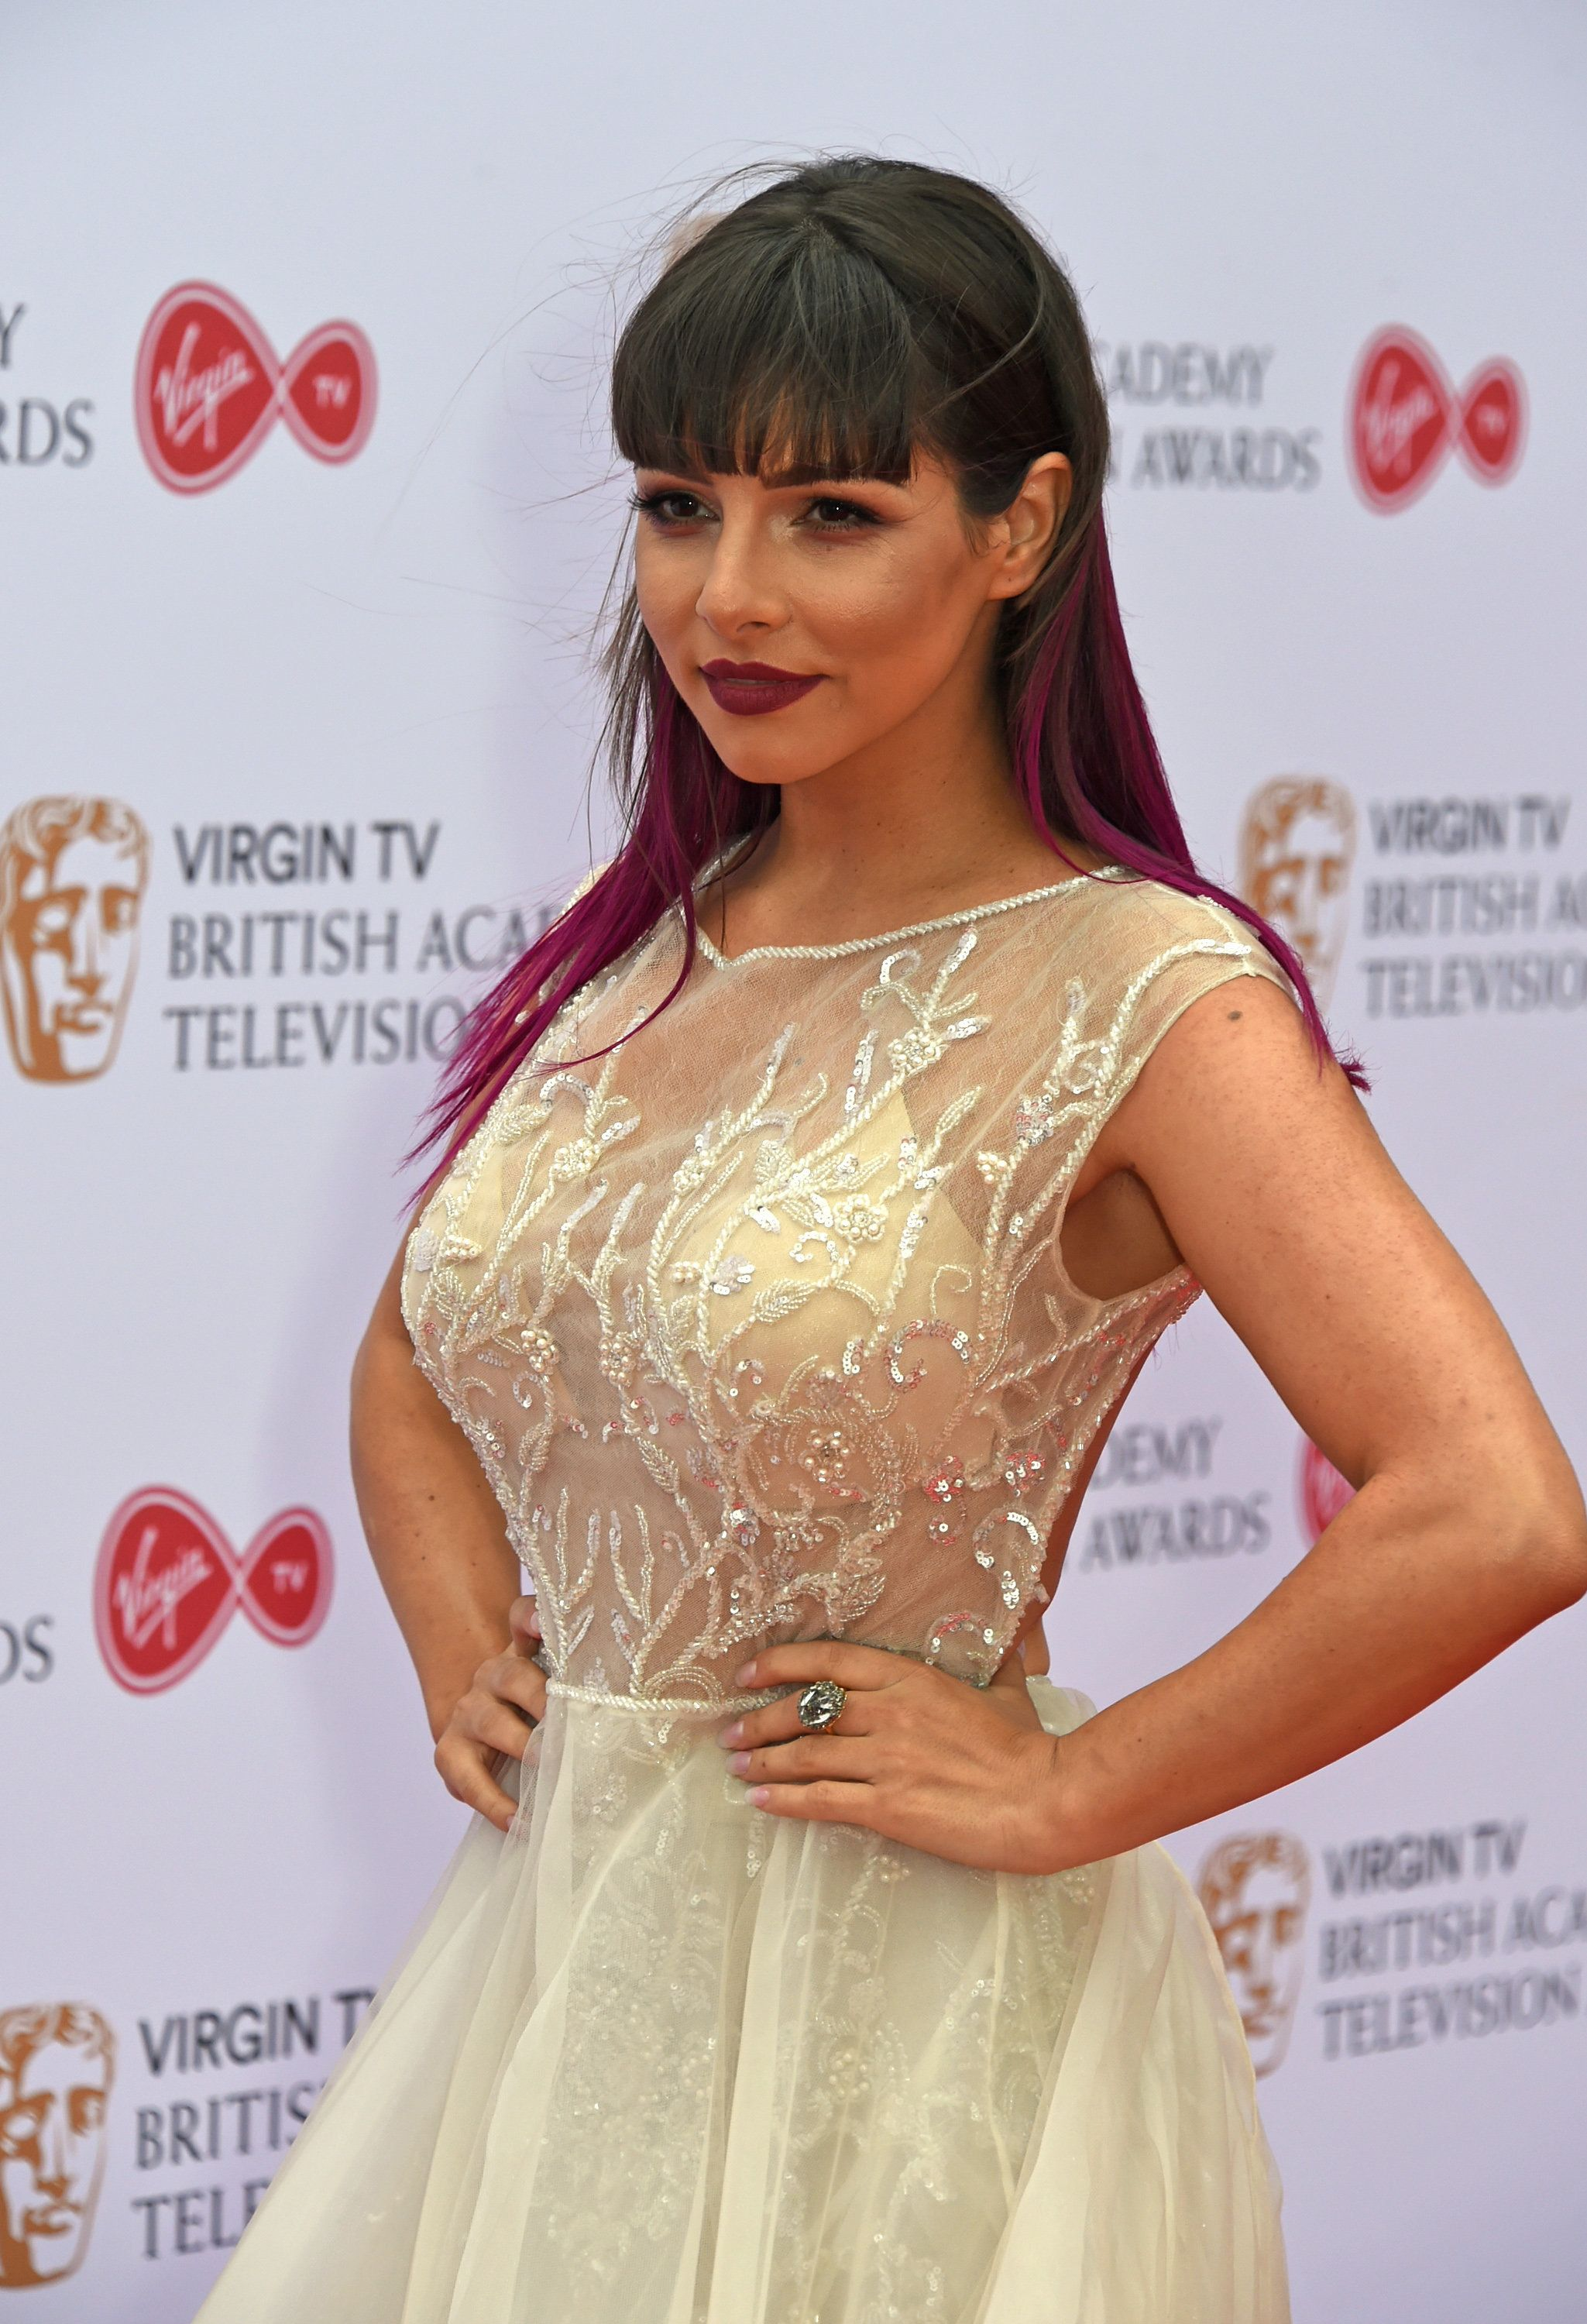 ACCIDENT: Ex-'Emmerdale' Star Roxanne Pallett Airlifted To Hospital After High-Speed Stock Car Race